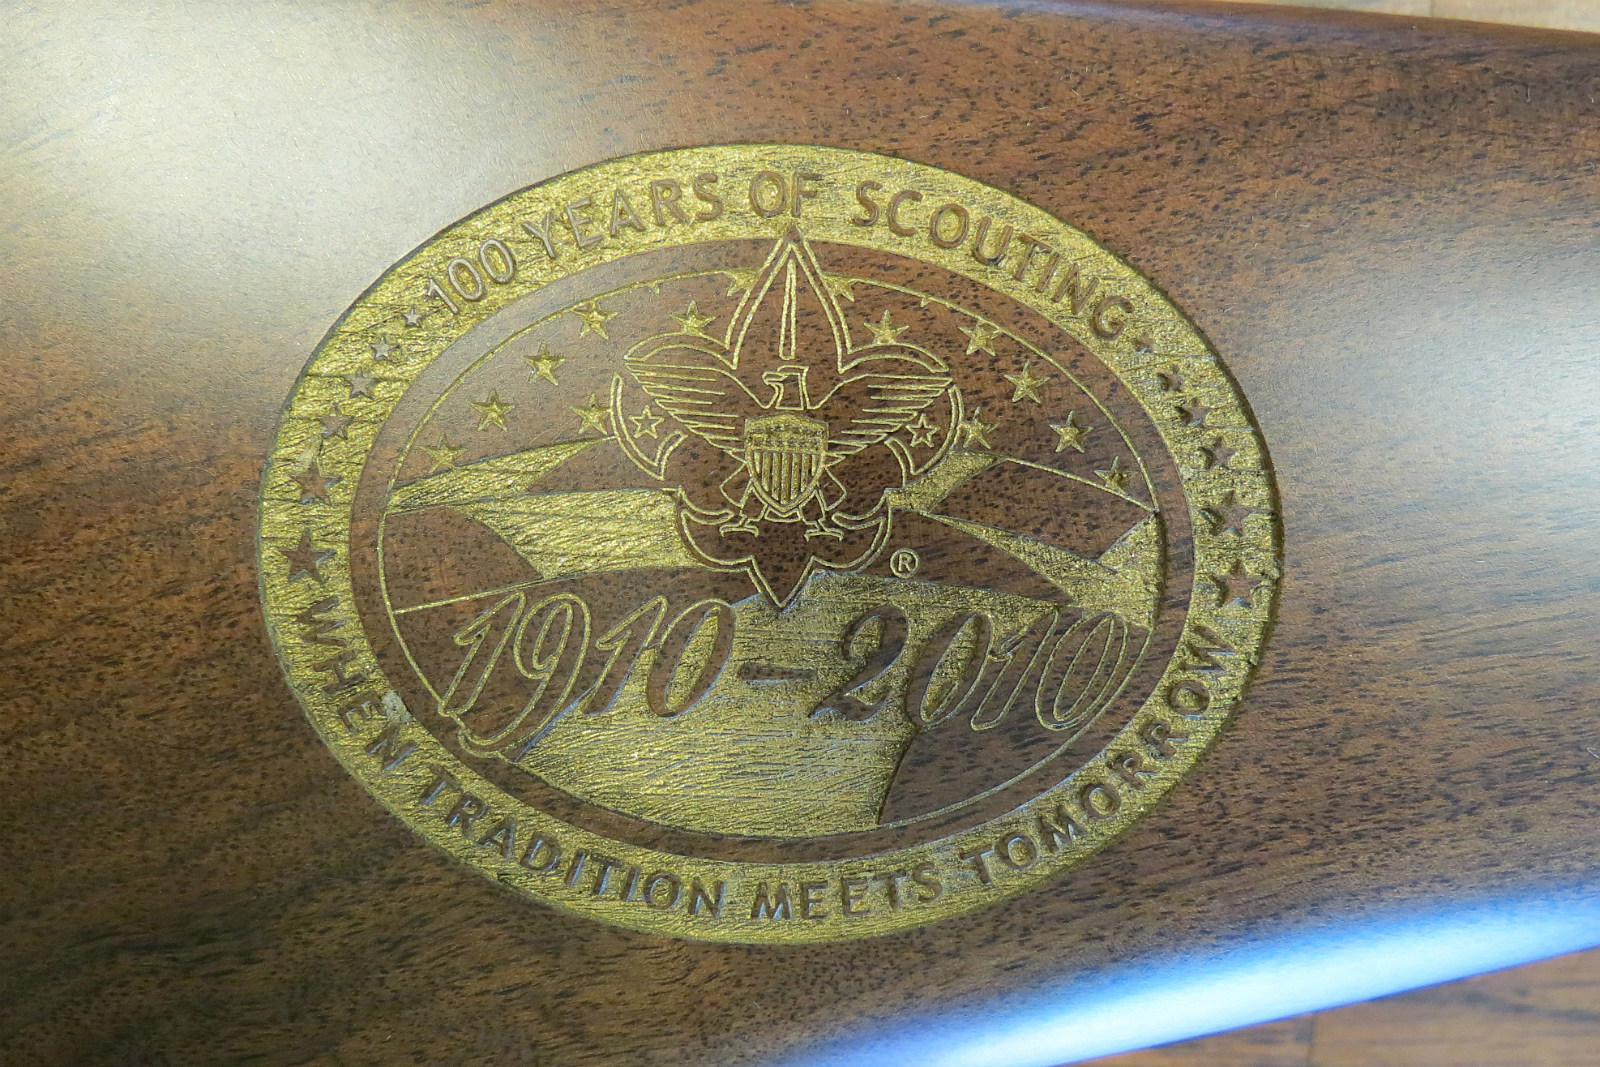 Boy Scouts, Rifle, Engraving, Logo, 2017